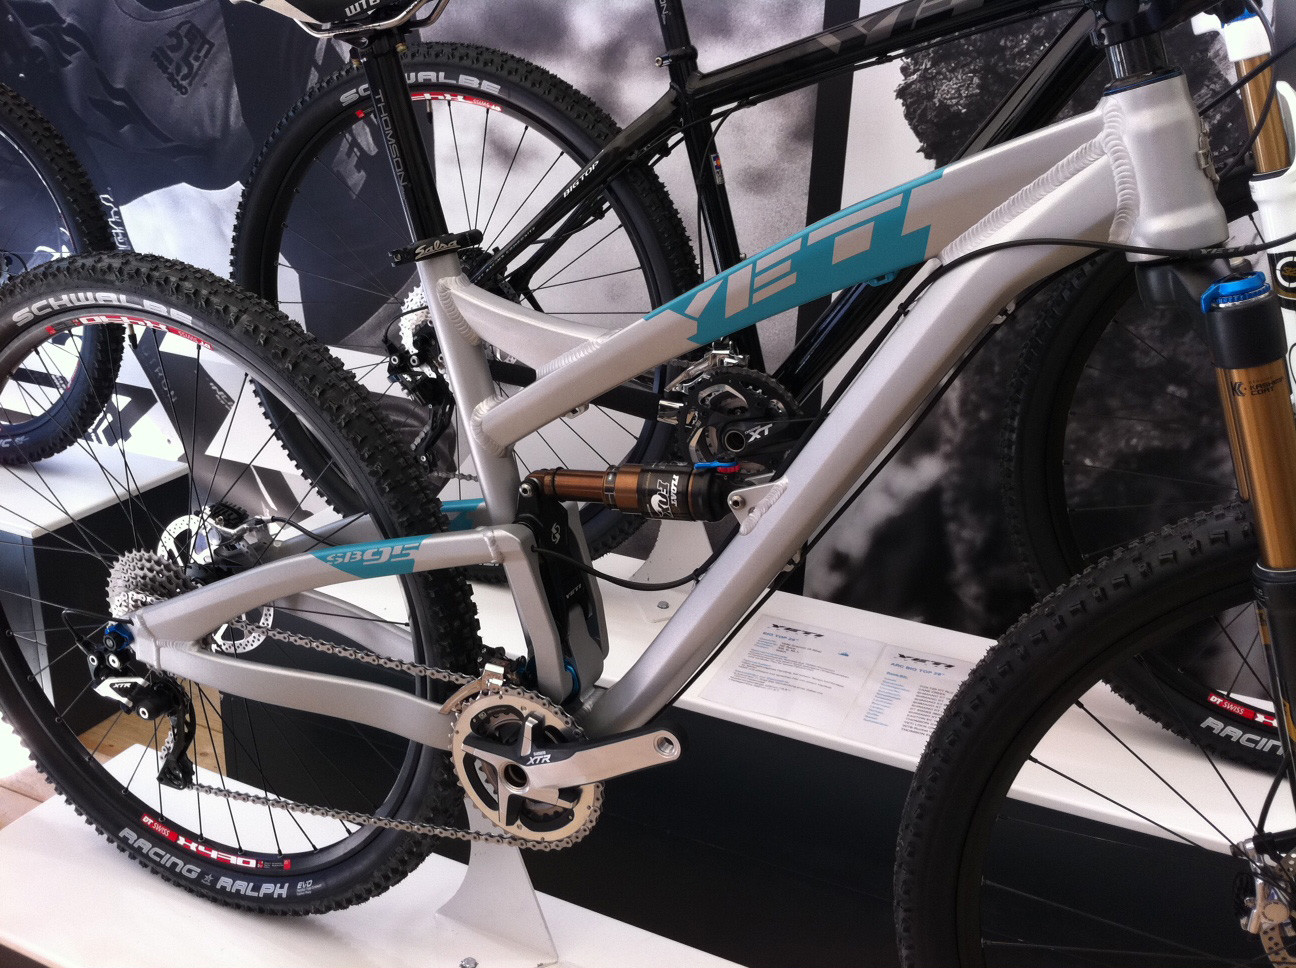 Yeti SB-95 - Eurobike 2011 - Mountain Biking Pictures - Vital MTB